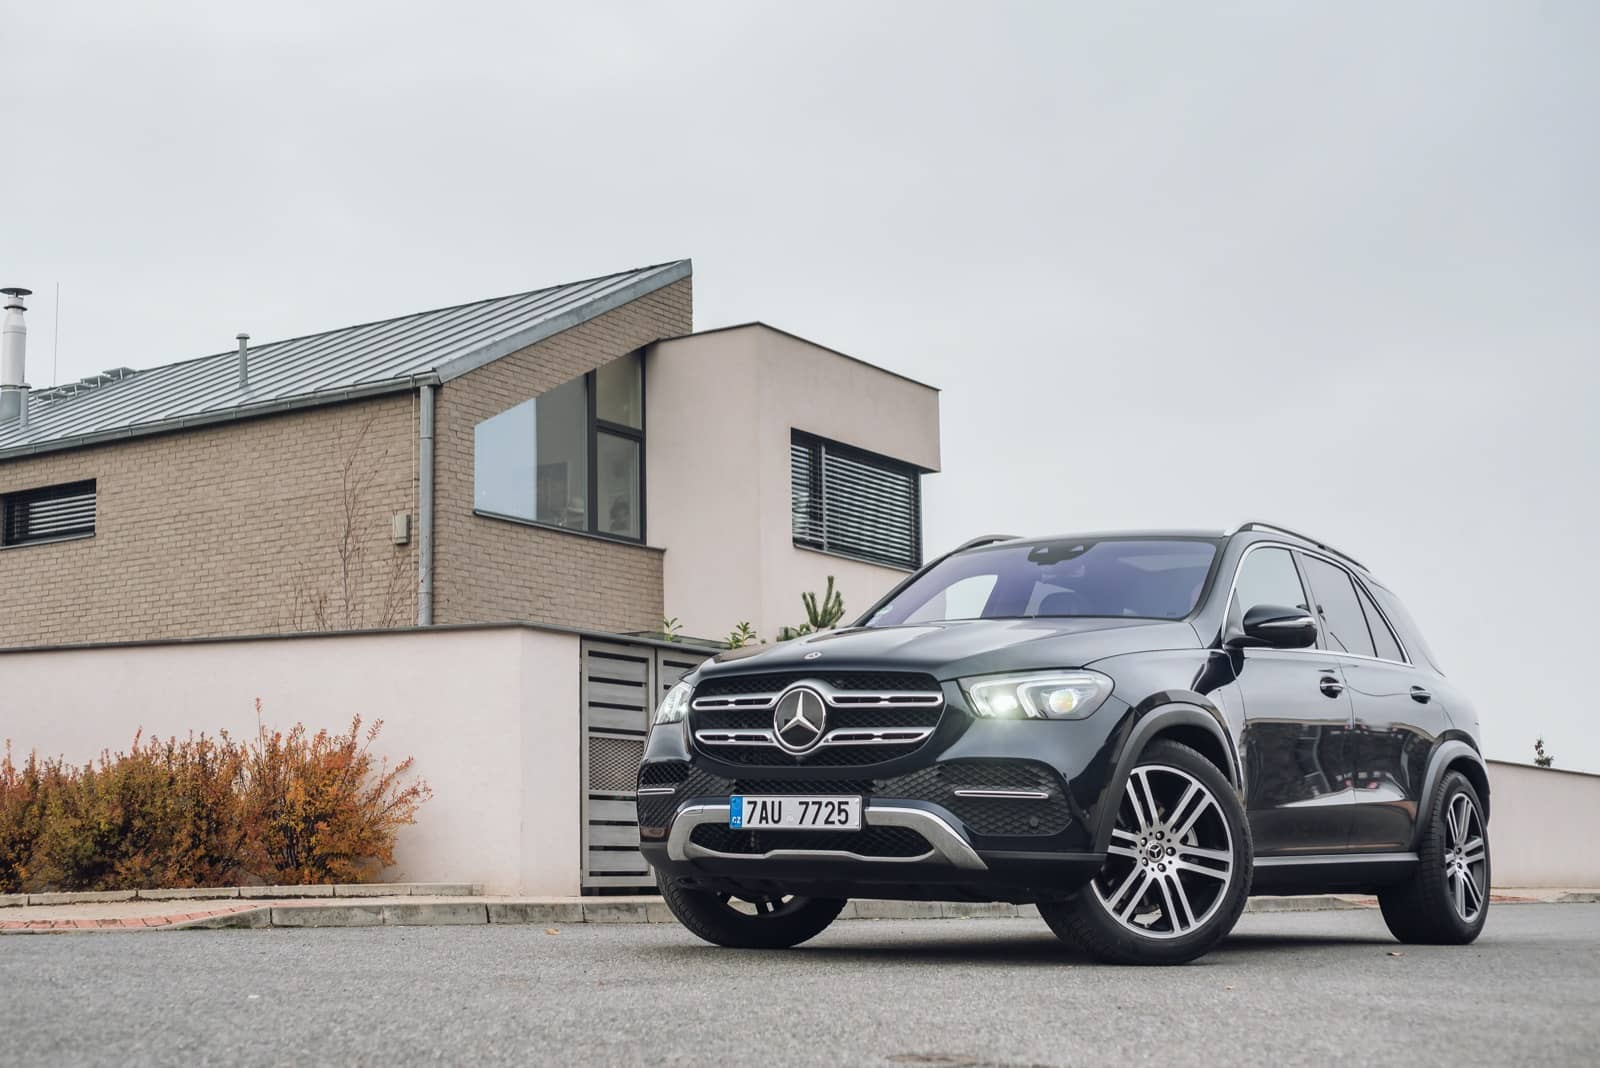 Mercedes-Benz GLE 400 d 00050